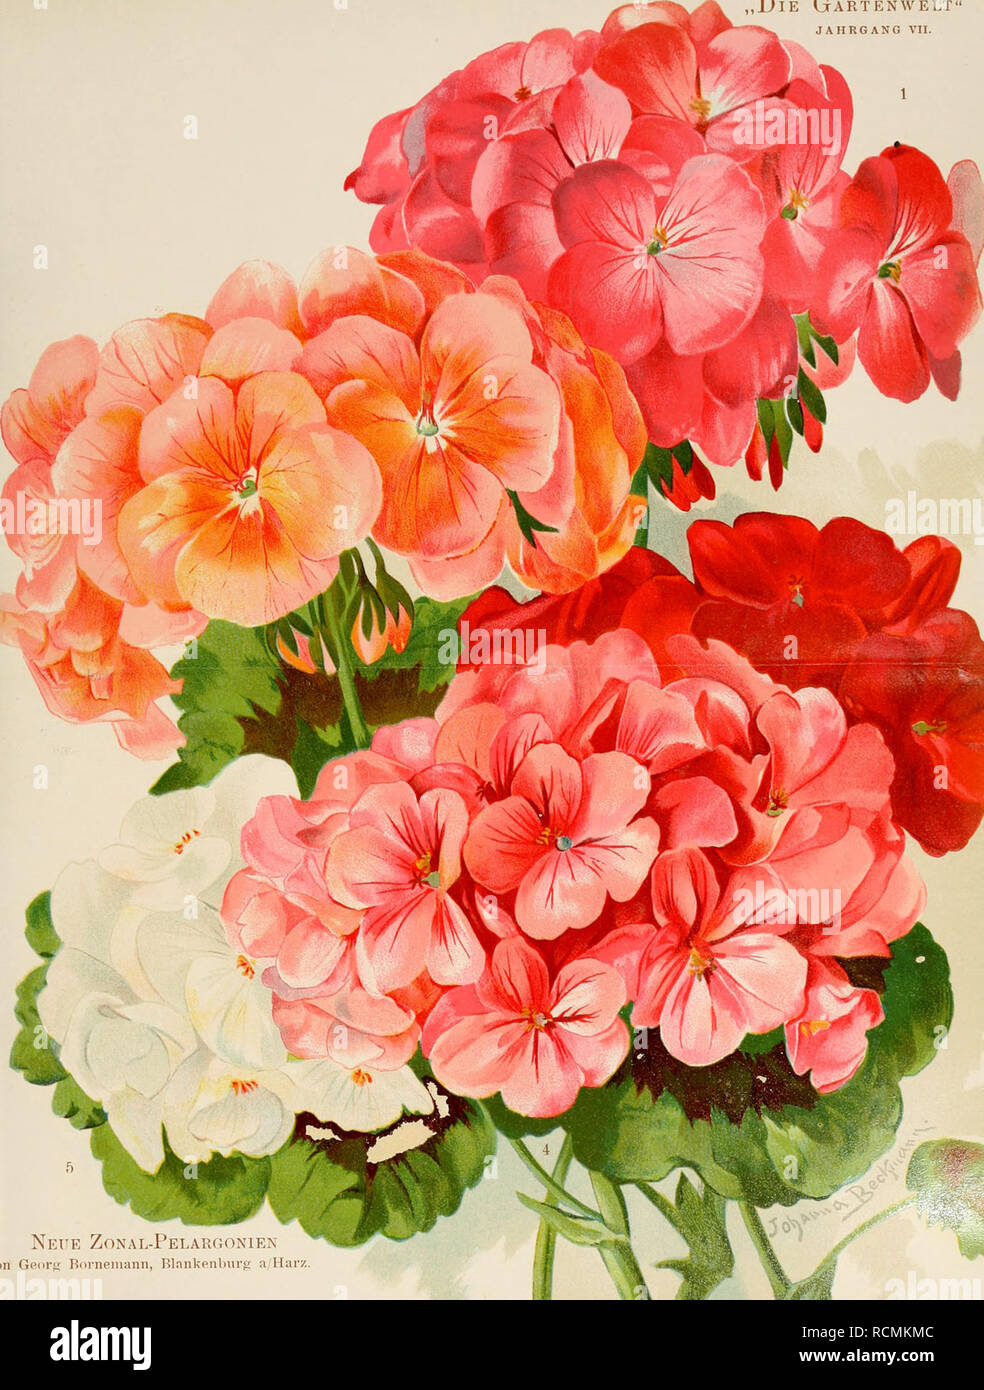 """. Die Gartenwelt. Gardening. Die G^. Neue Zonal-Felaruonien """"""""' 011 Geors Boi-neniann, Blankenburg a Harz.. Please note that these images are extracted from scanned page images that may have been digitally enhanced for readability - coloration and appearance of these illustrations may not perfectly resemble the original work.. Berlin : G. Schmidt Stock Photo"""